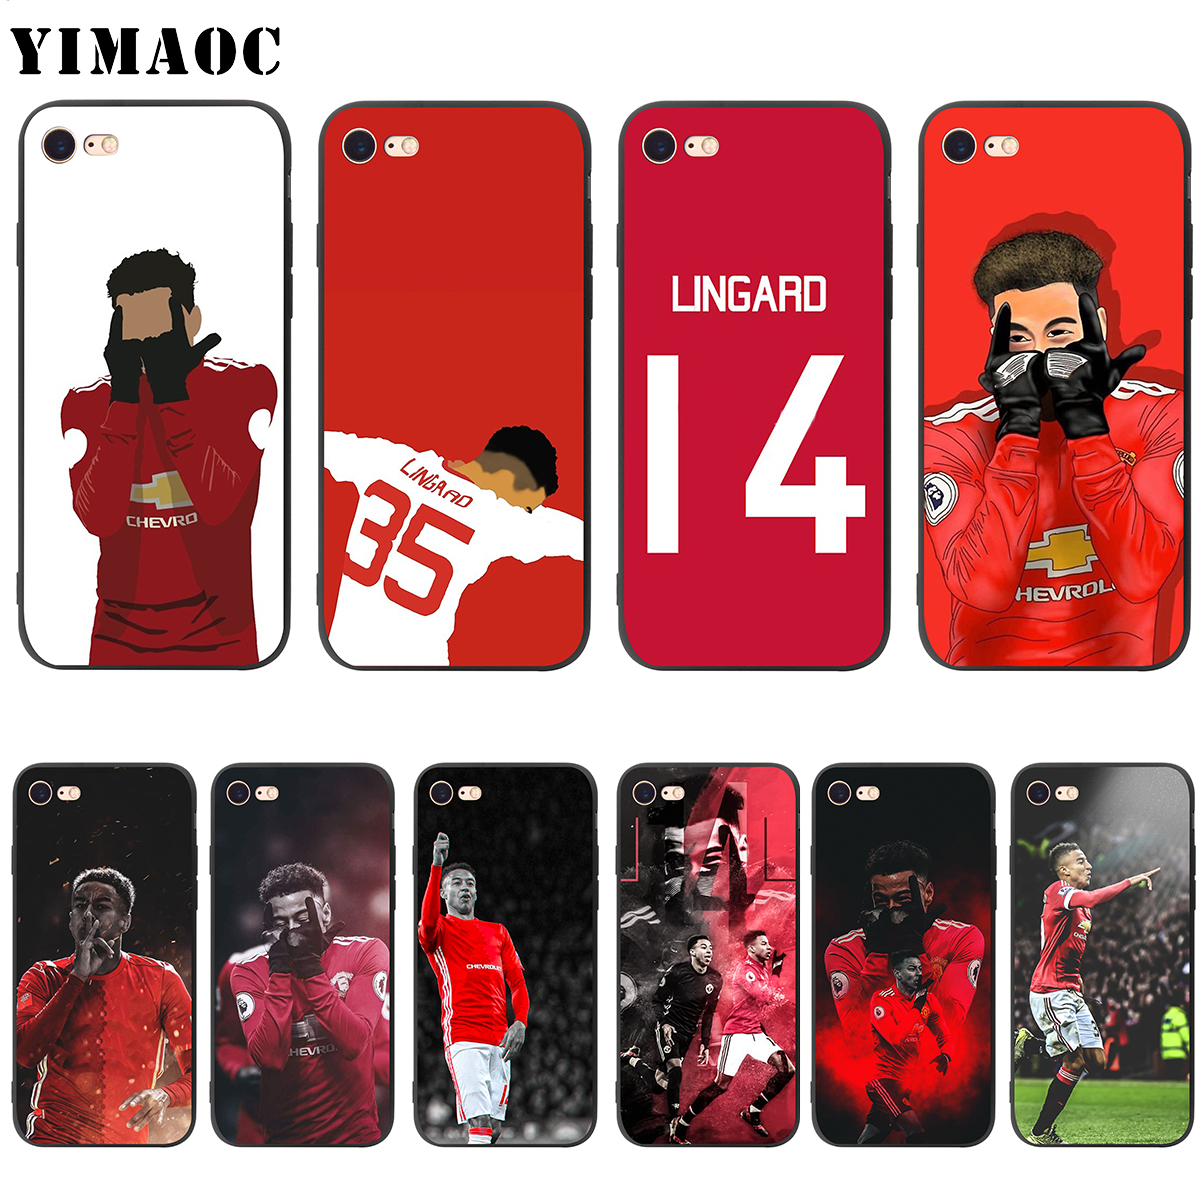 Search For Flights Yimaoc Toy Story Pizza Planet Silicone Case For Xiaomi Redmi Mi Note Max 3 6a 7 6 8 9 Se Mi6 Mi8 A1 A2 Lite For Pocophone F1 Phone Bags & Cases Cellphones & Telecommunications